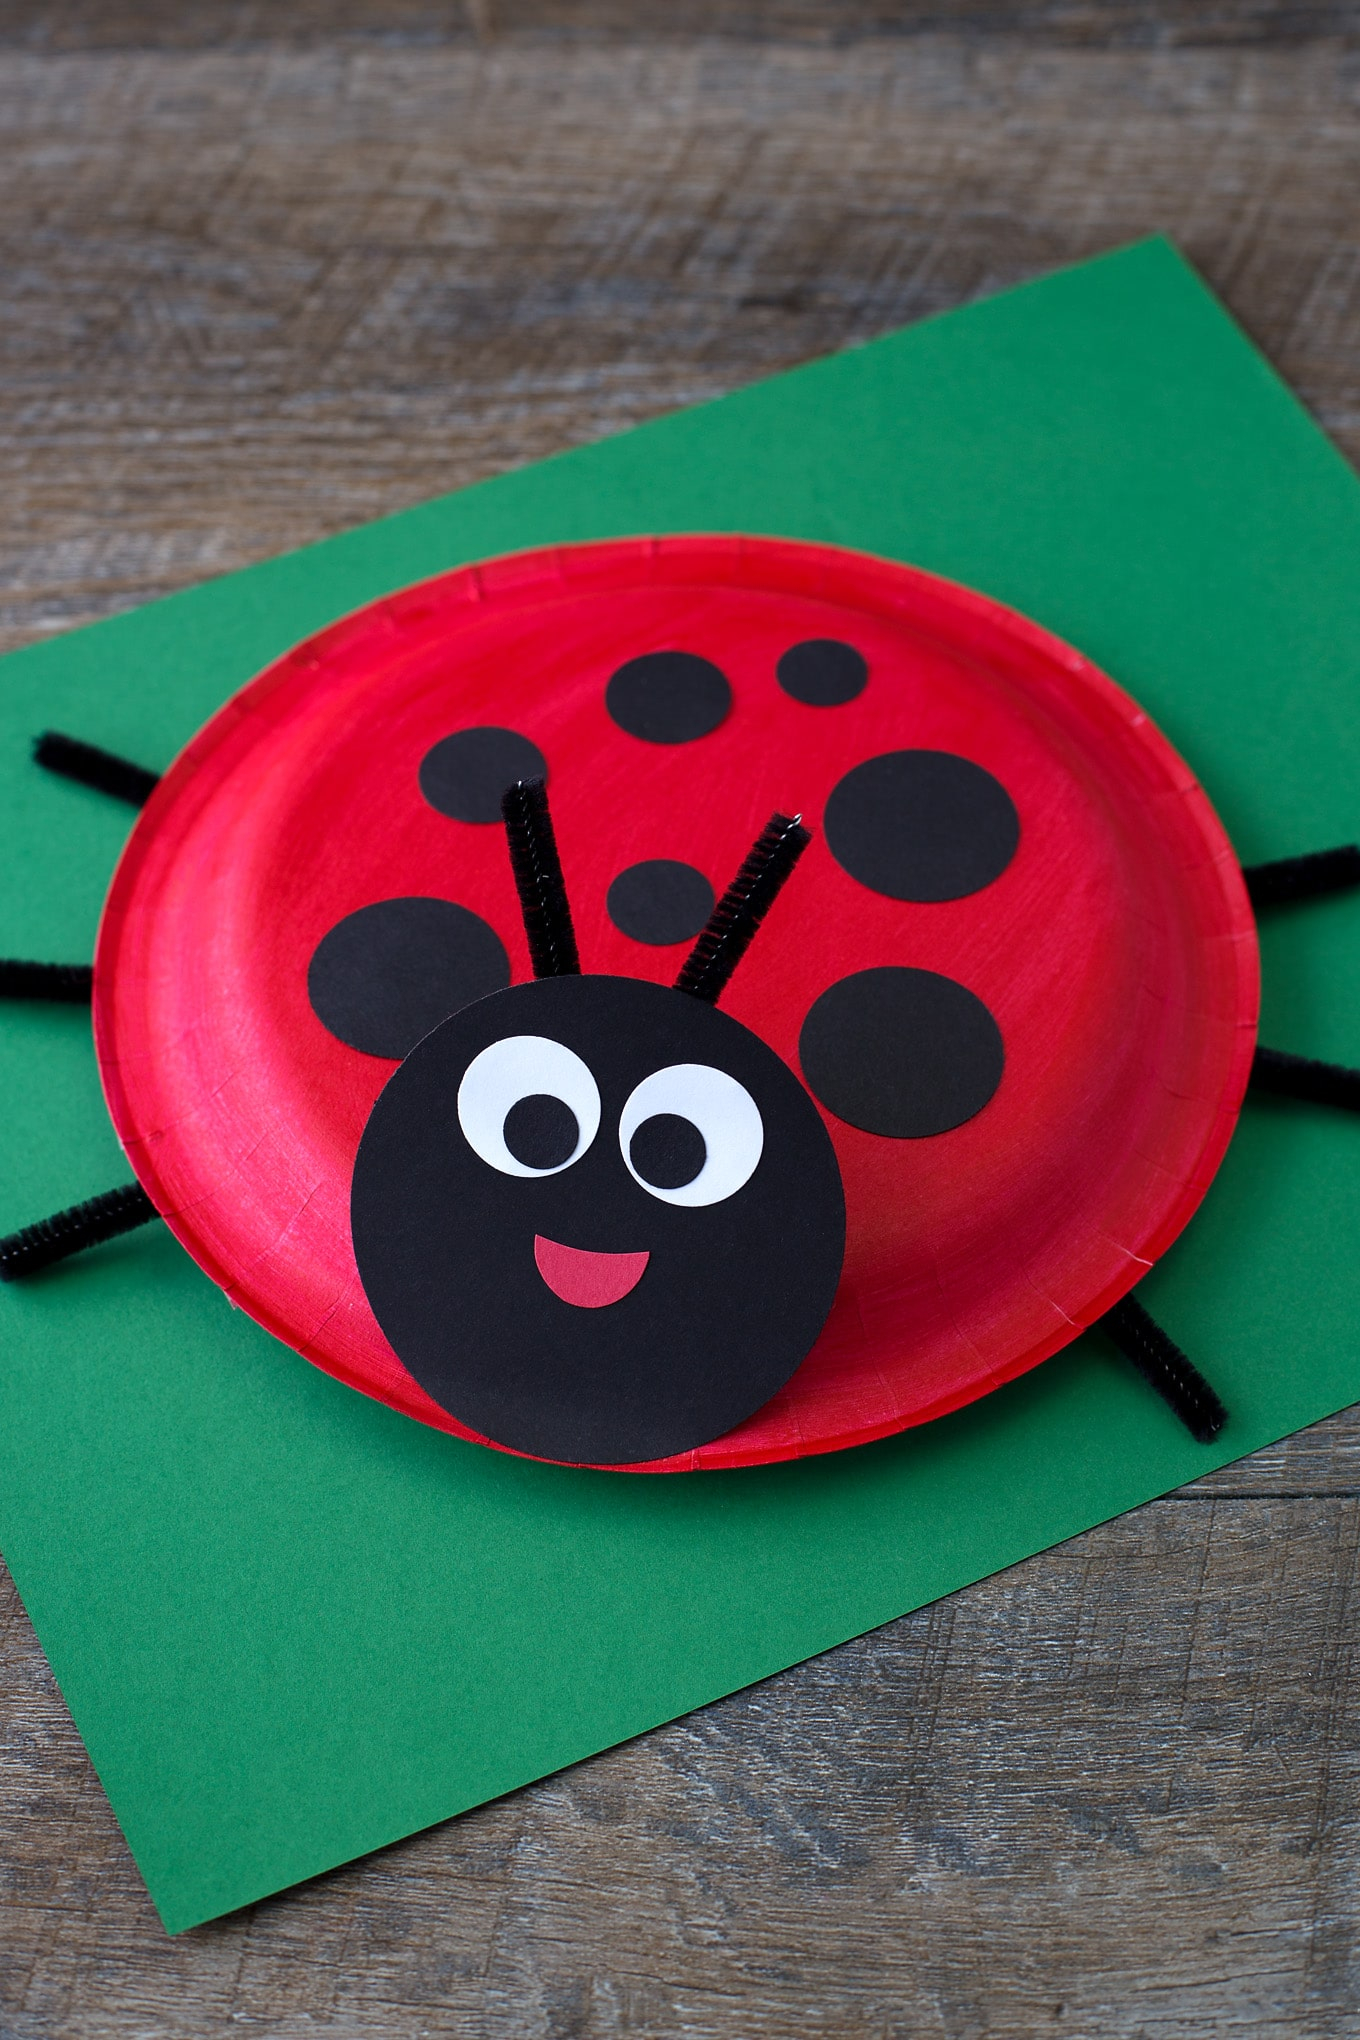 Simple Crafts Using Paper to Add New Accessory at Home How To Make A Paper Plate Ladybug